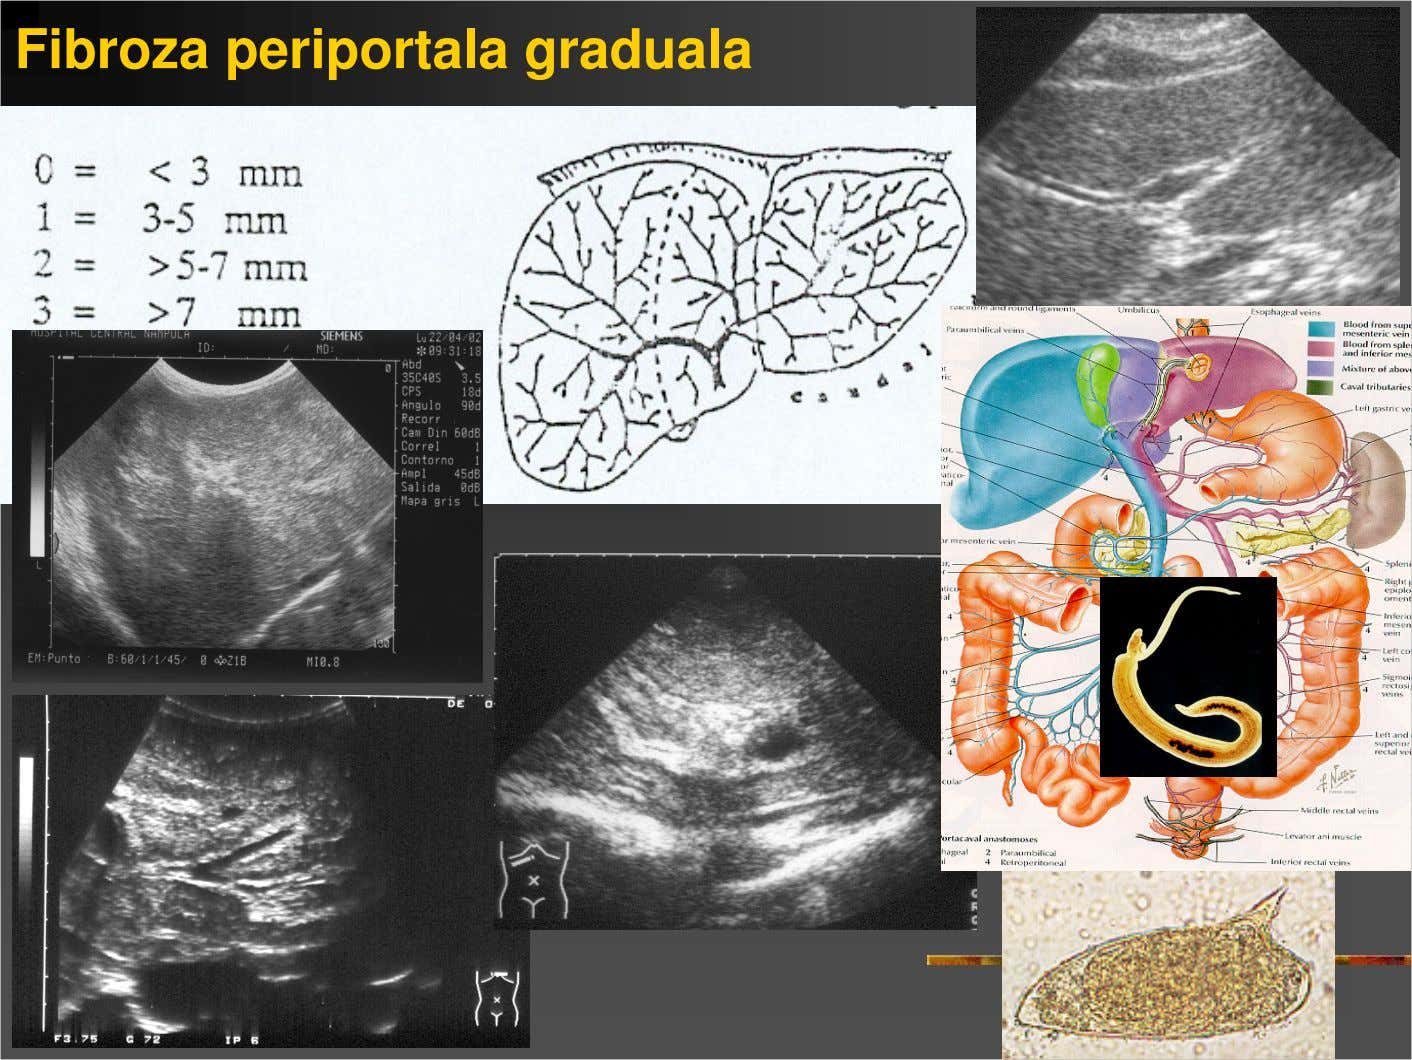 Fibroza periportala graduala normal